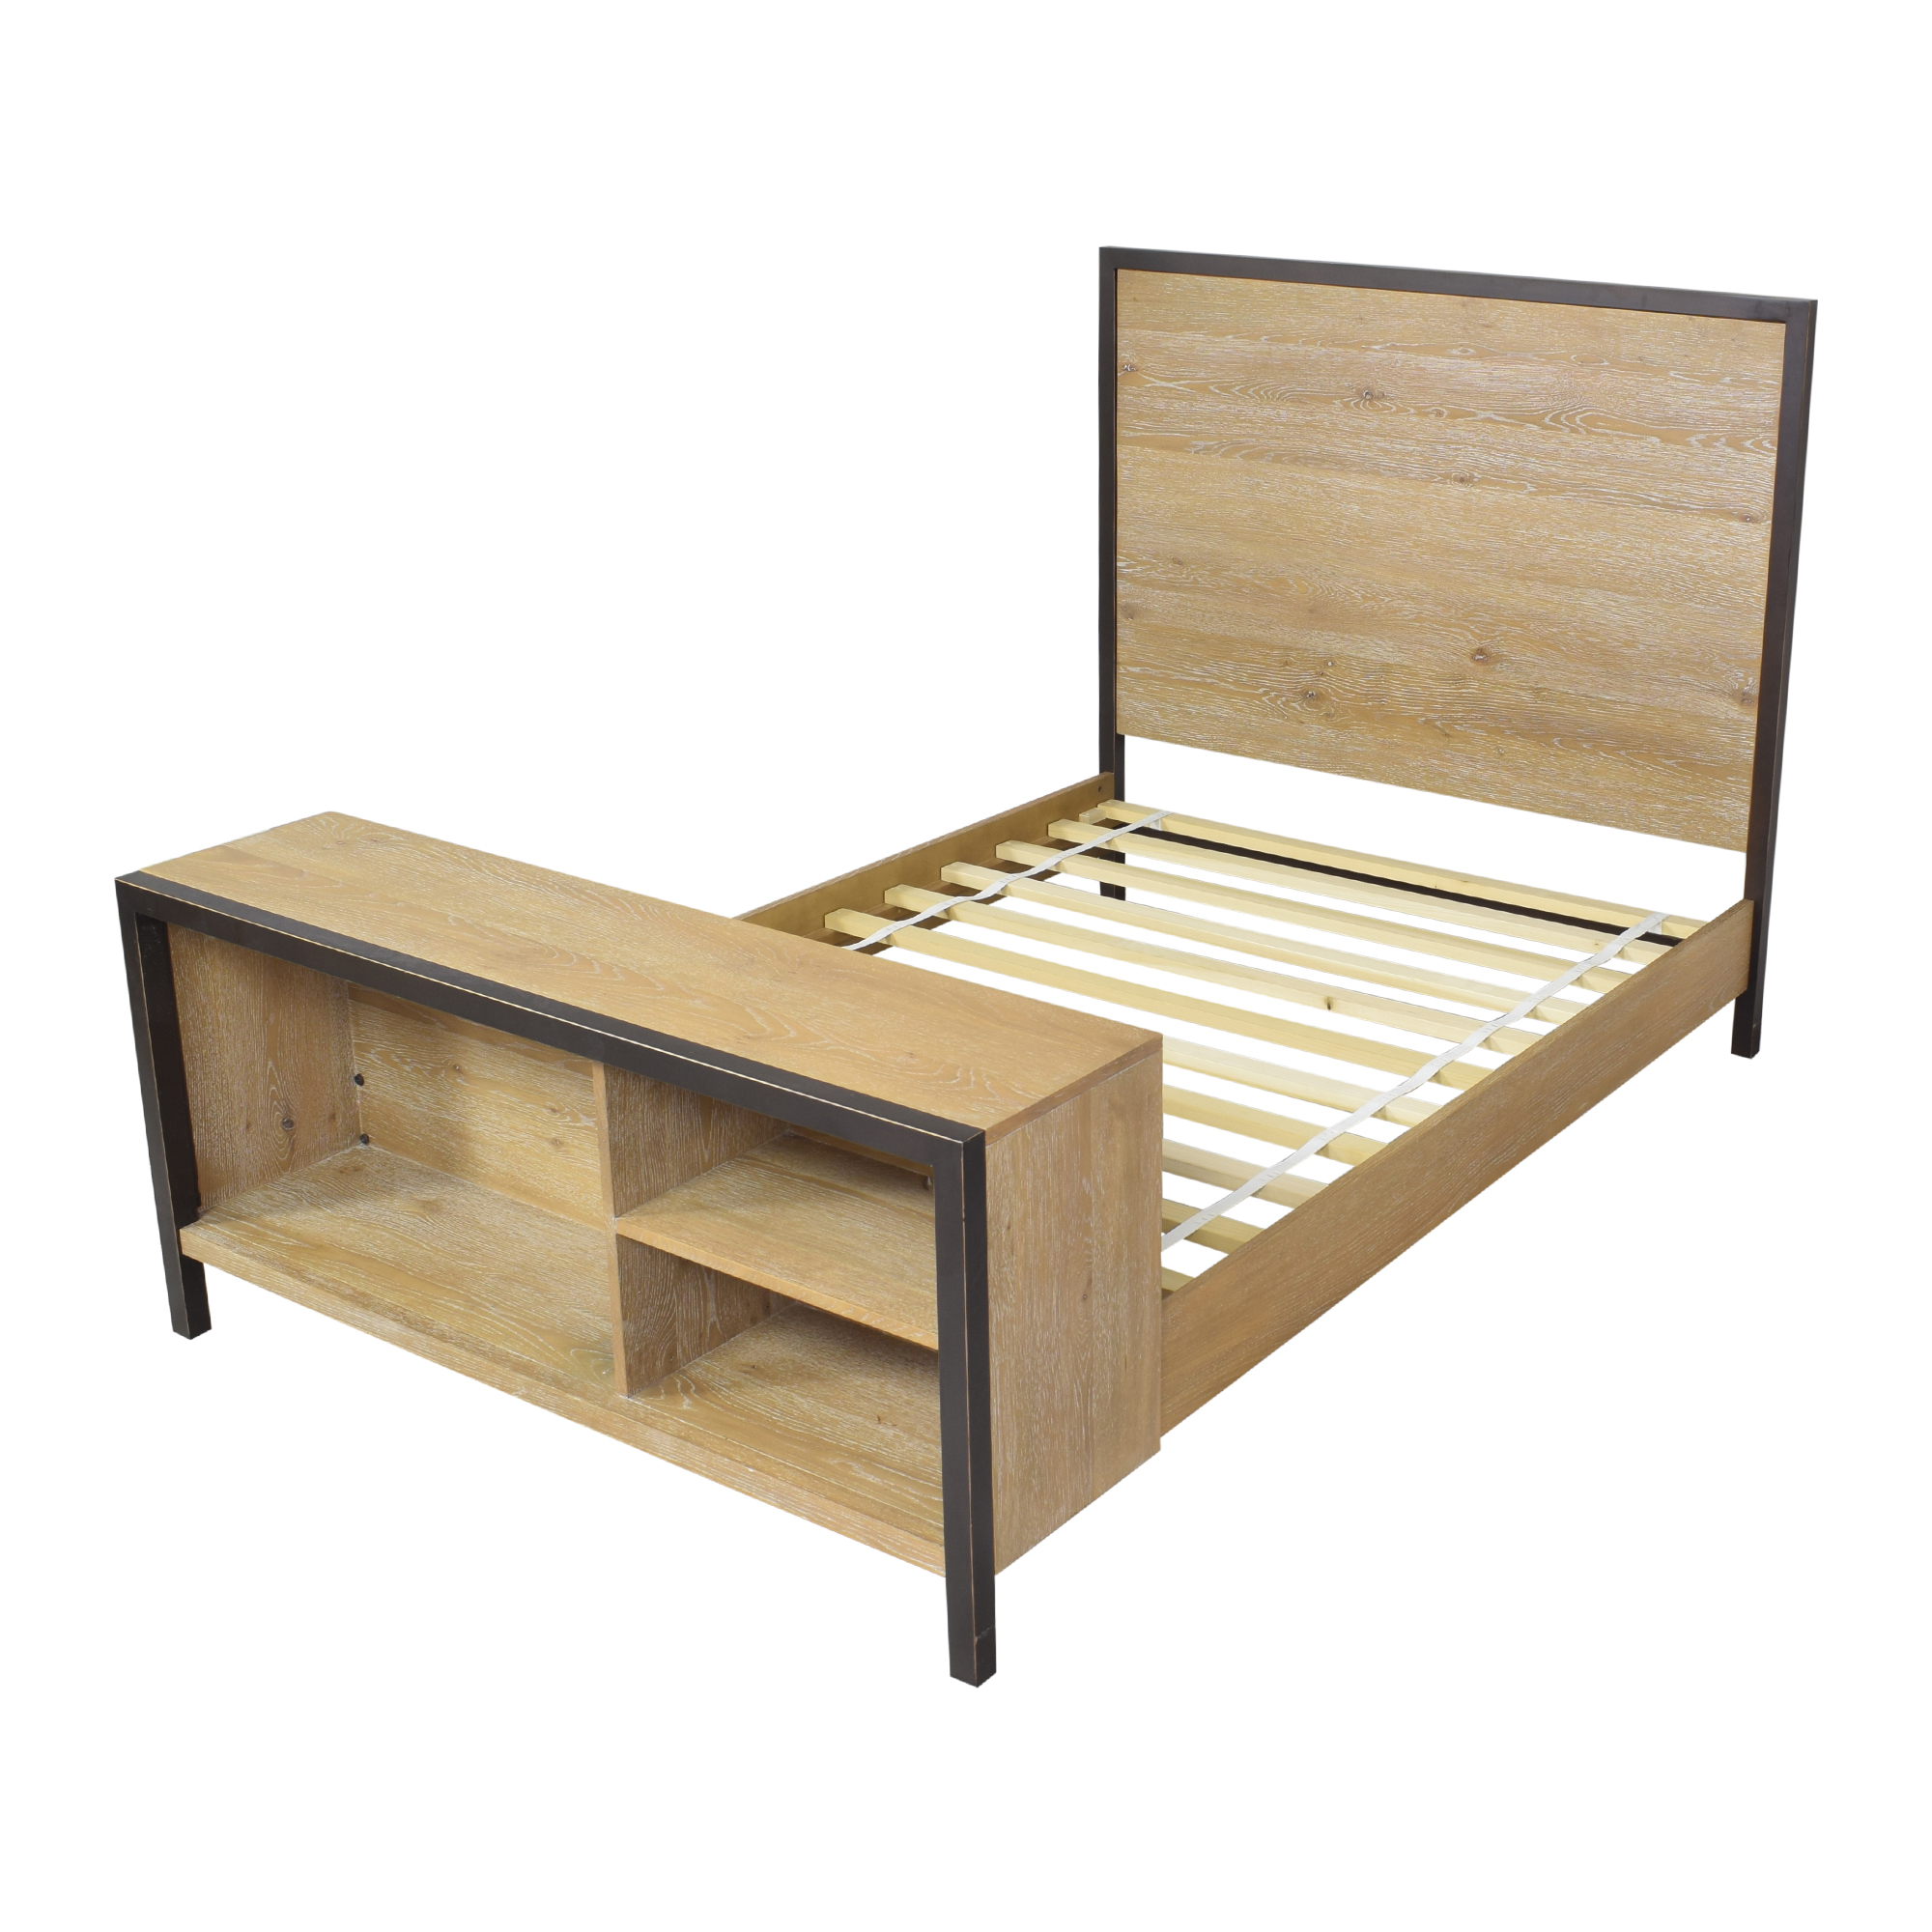 shop West Elm West Elm Full Bed with Bookcase online